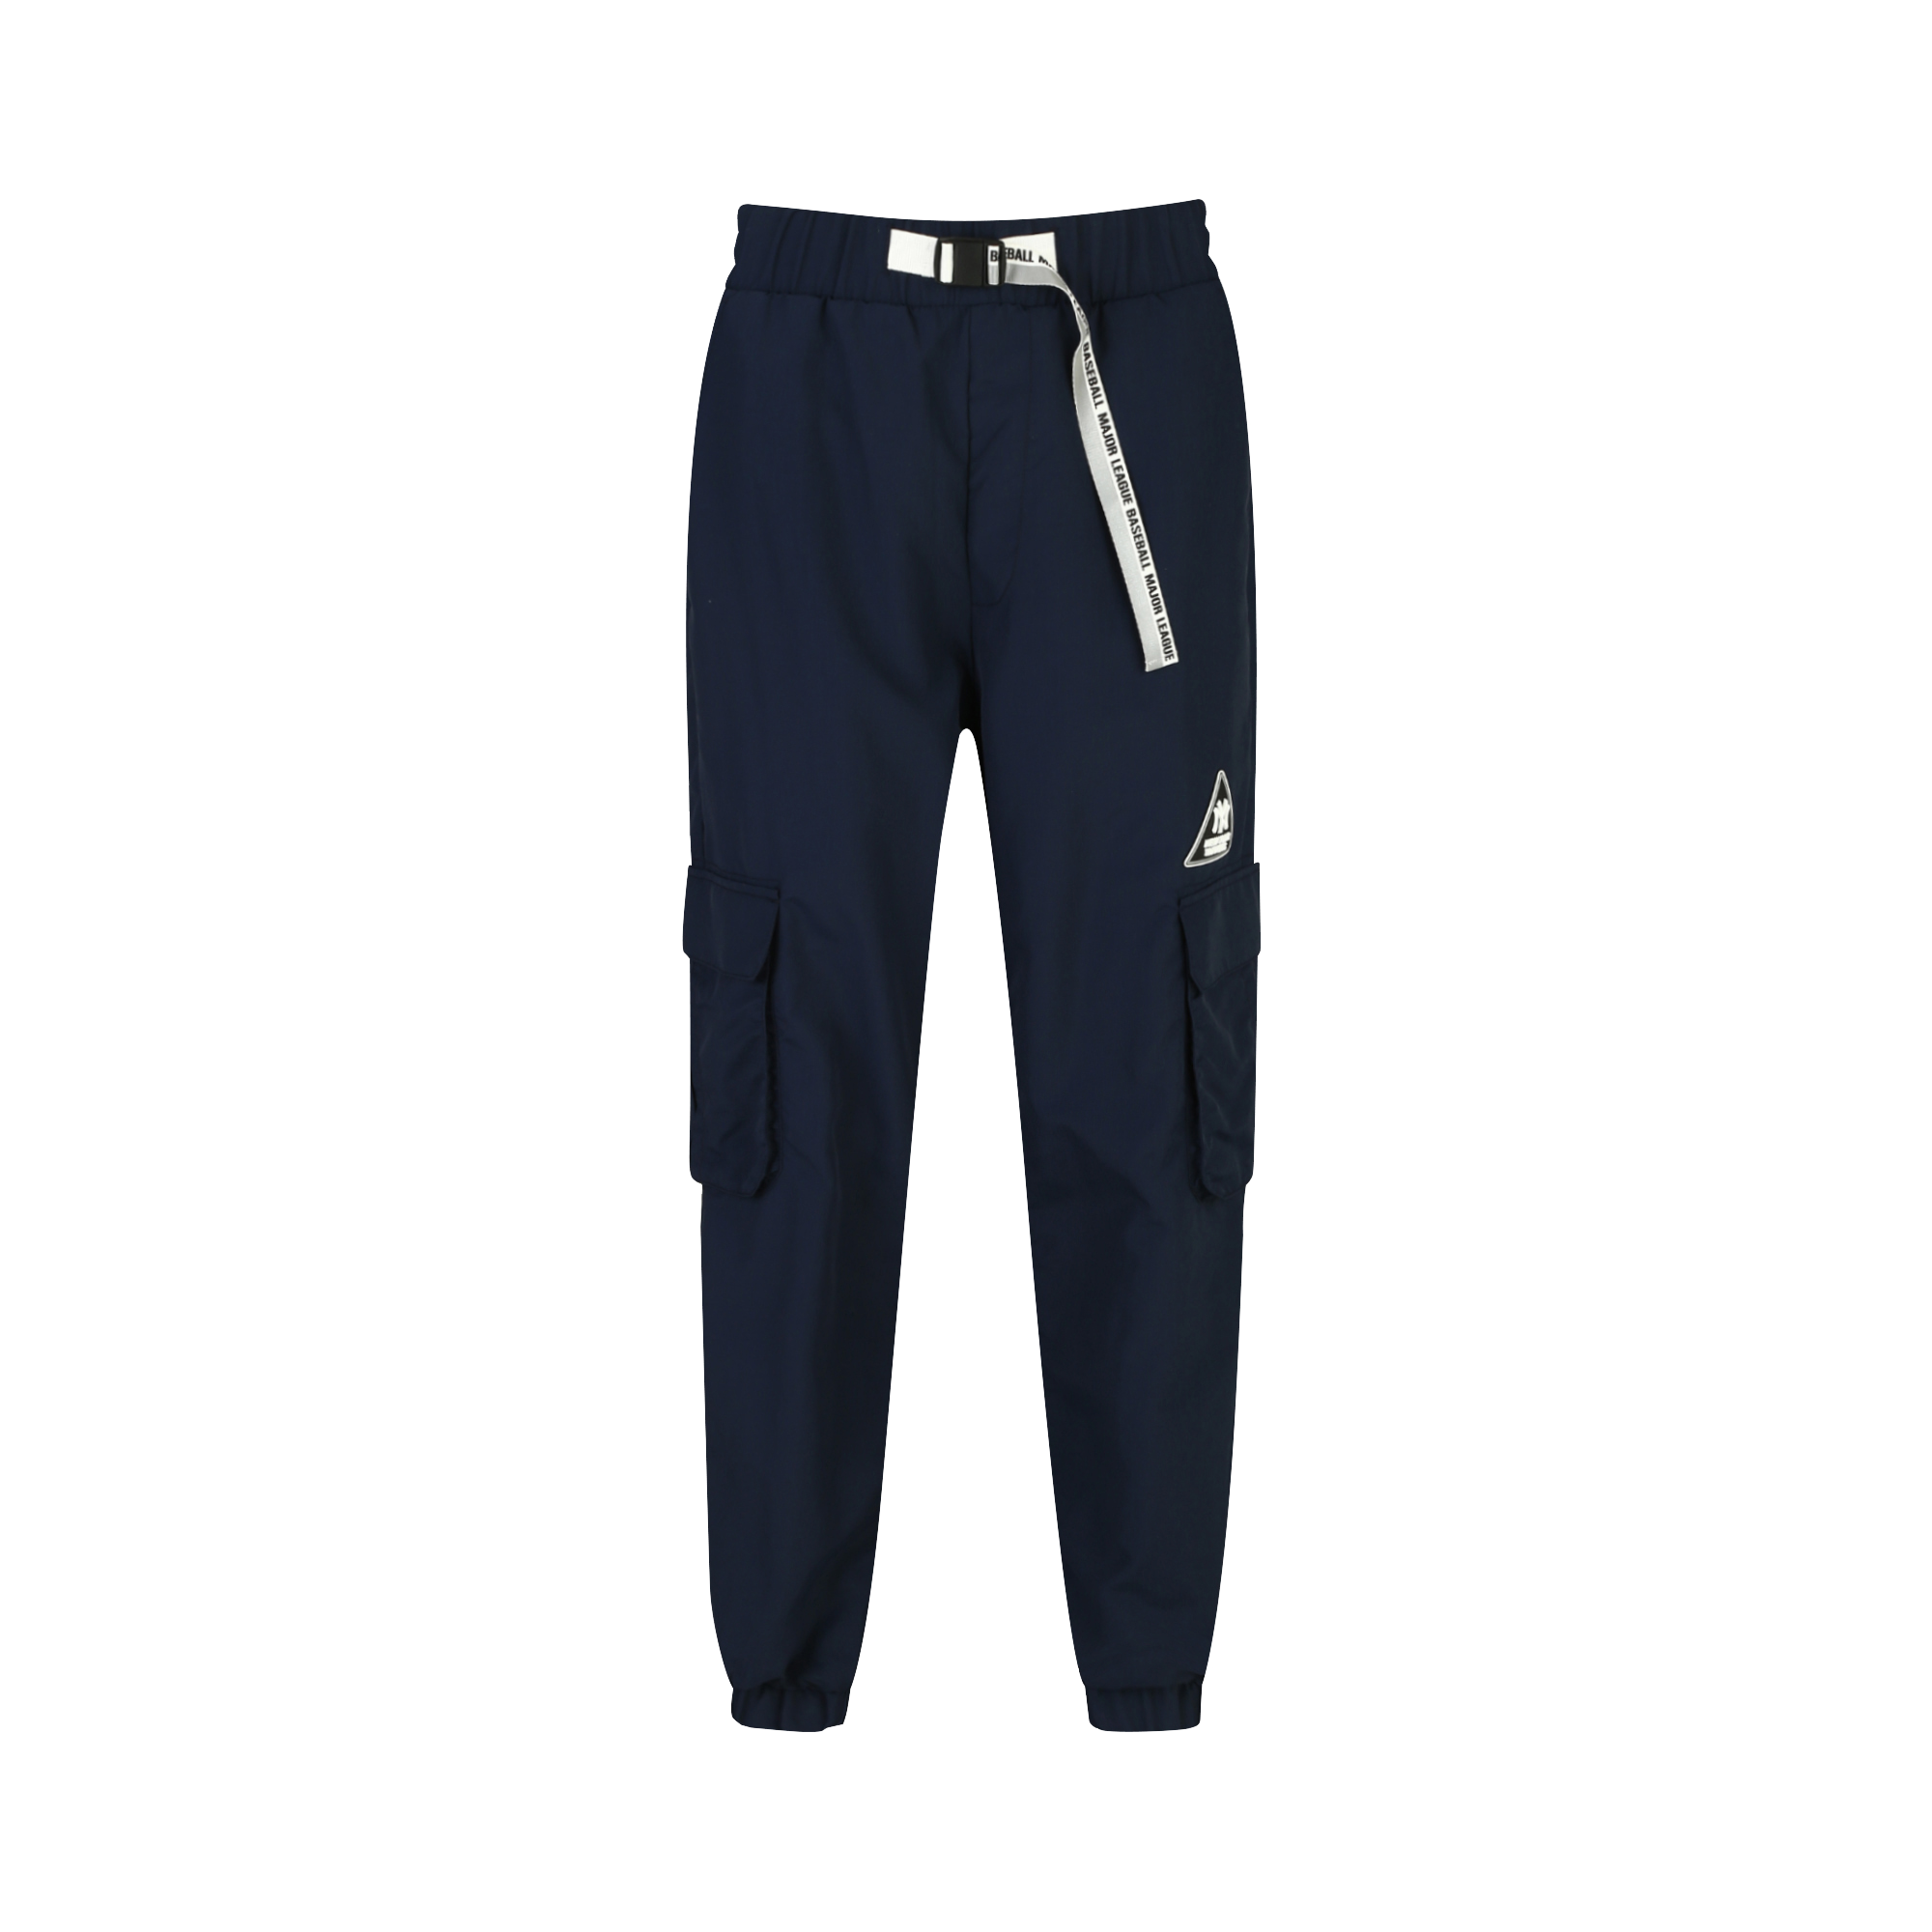 NEW YORK YANKEES DUGOUT STREET TRAINING PANTS